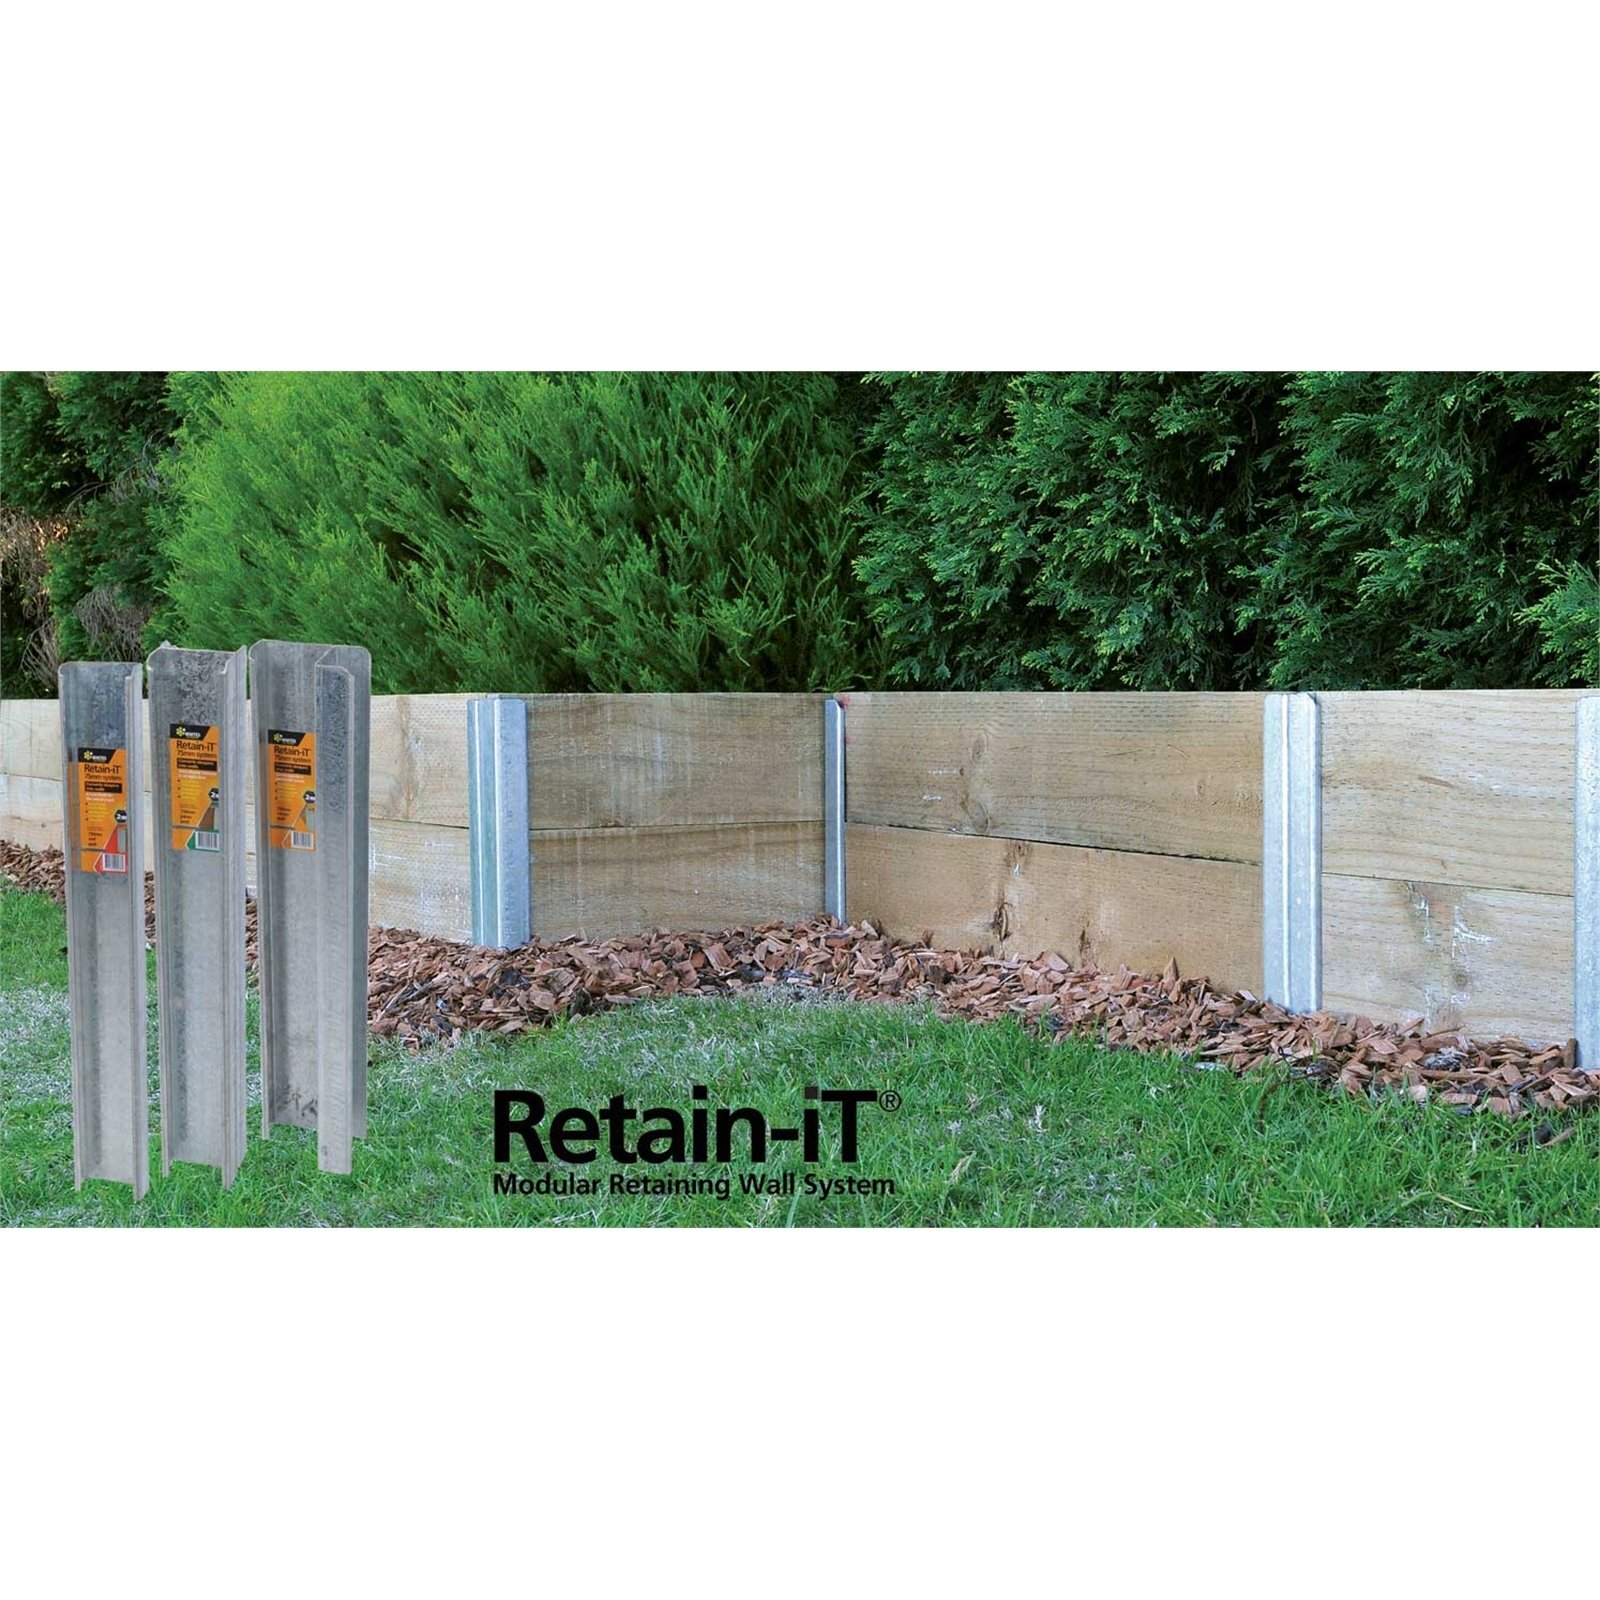 Whites Outdoor 1100 x 75mm Retain-iT Joiner Post